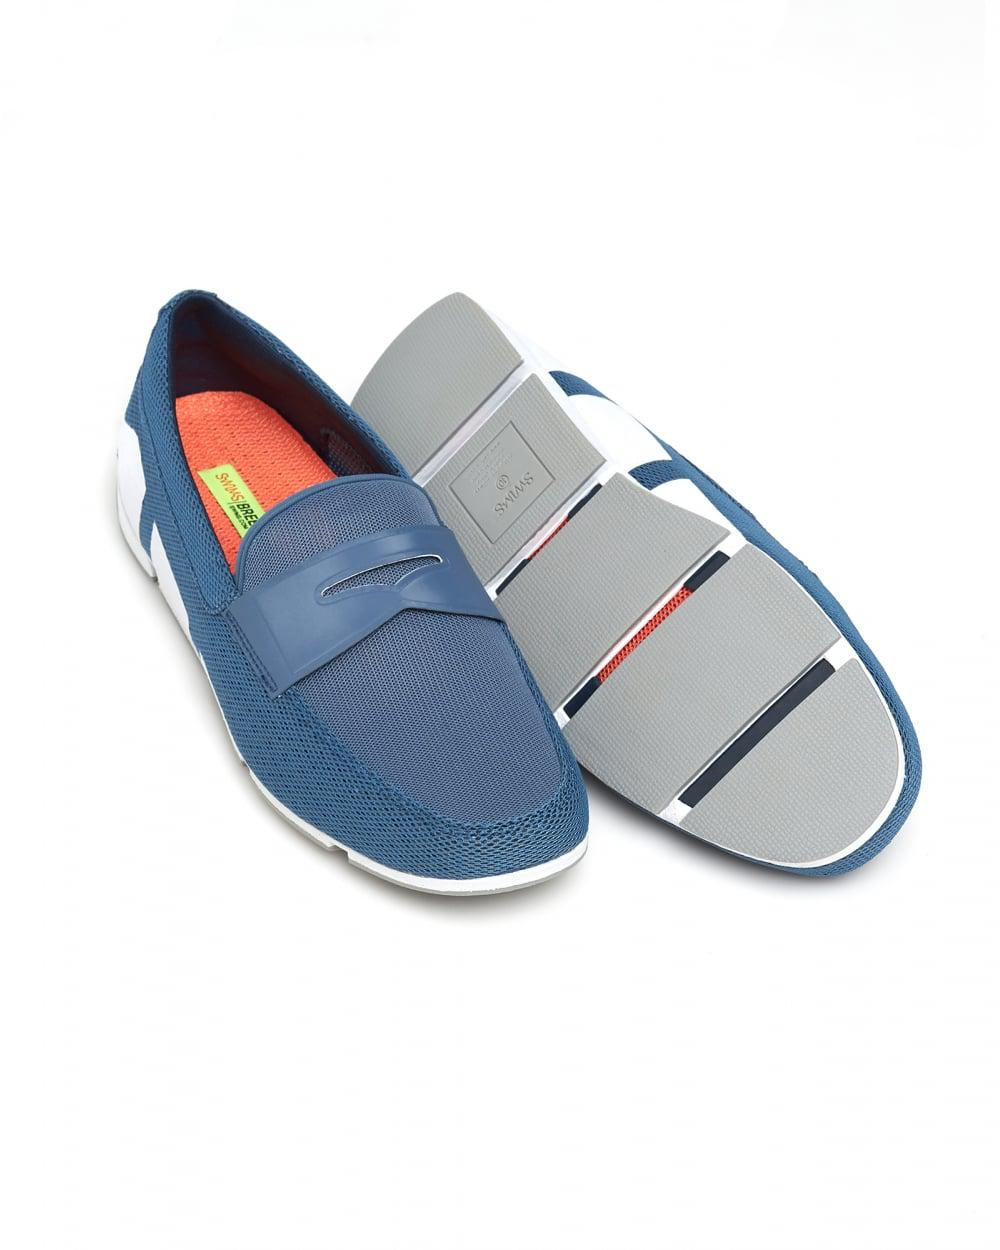 52e762506c6 Swims Breeze Penny Loafer